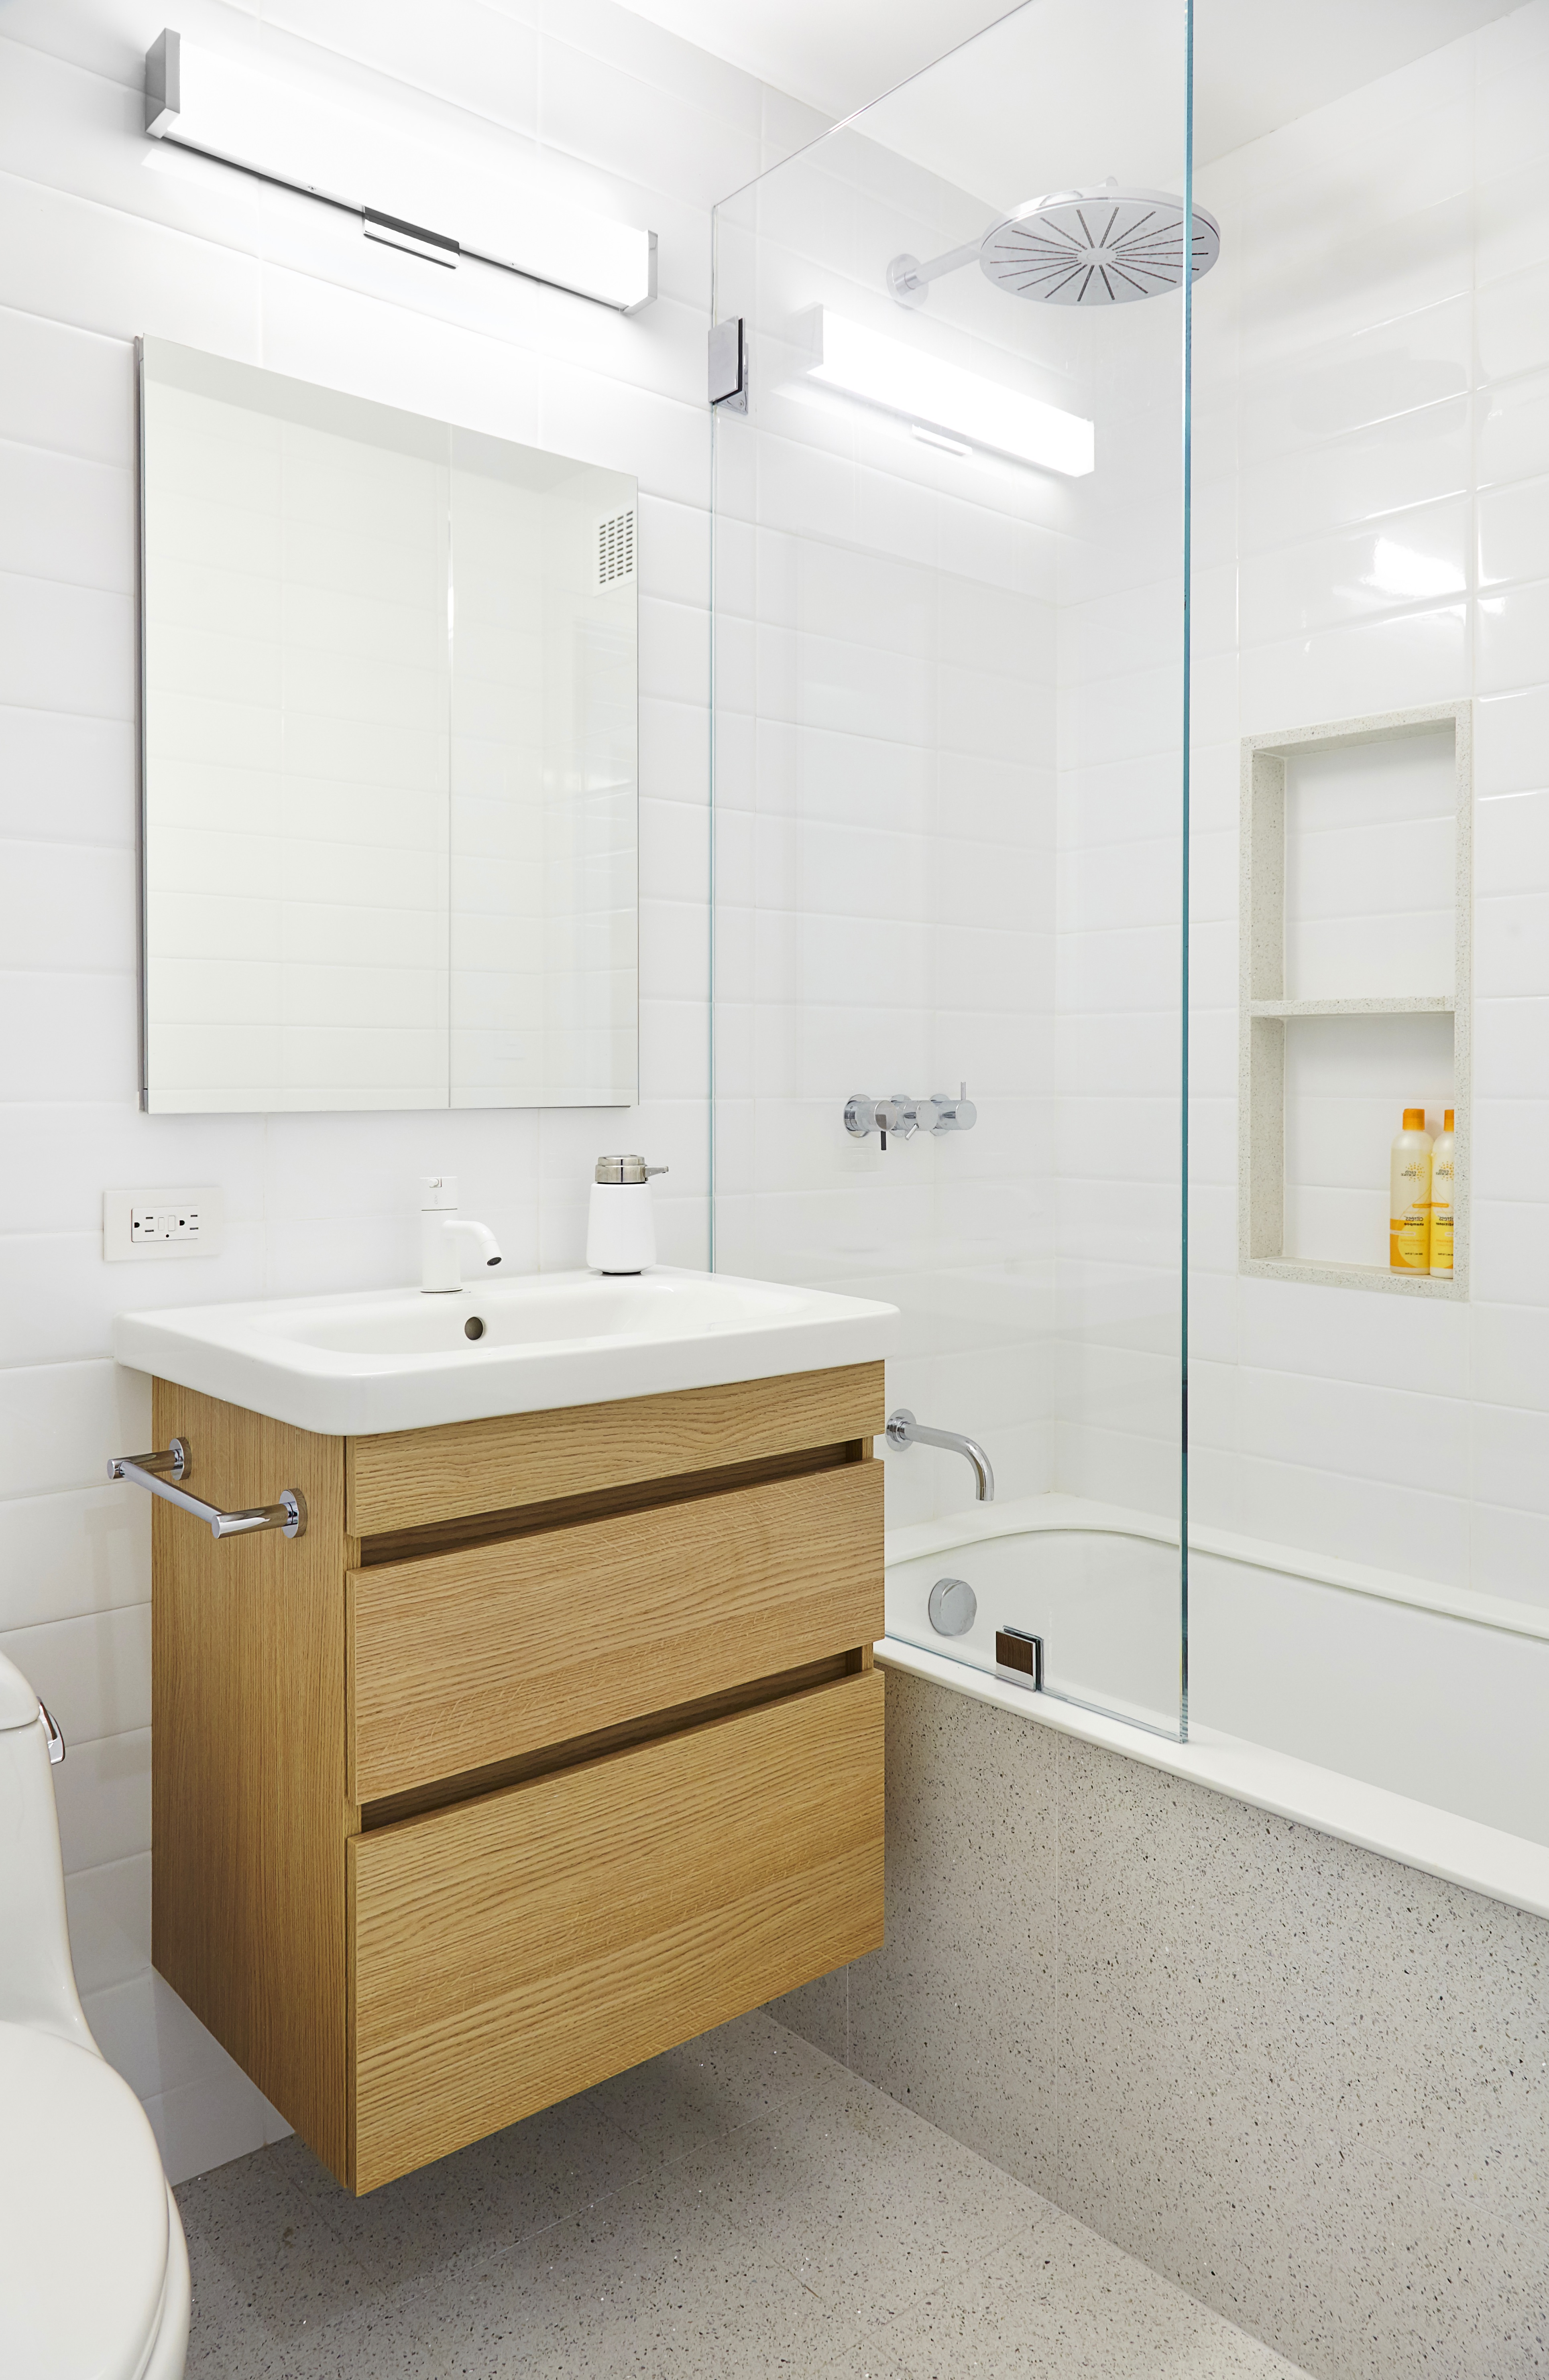 Light Colored Wood Floating Vanity Furniture For Small Contemporary Bathroom (Image 10 of 18)